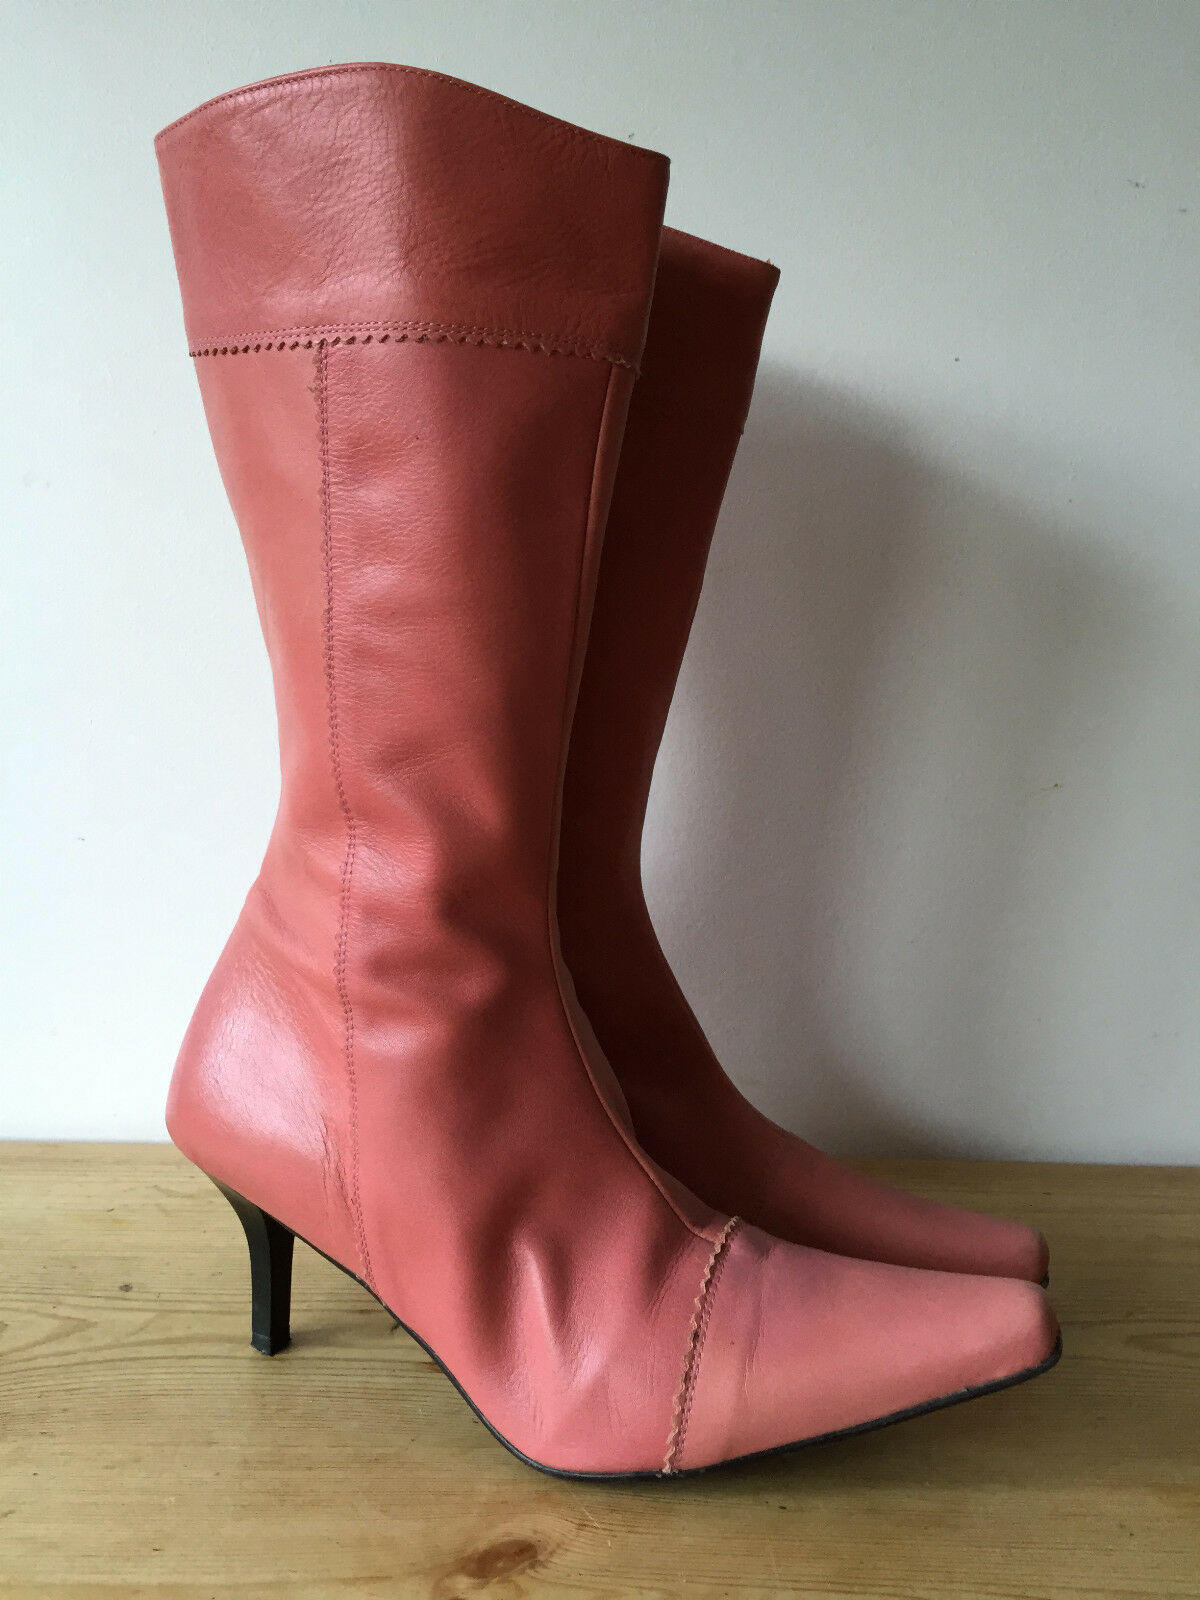 GATEOR LADIES PINK LEATHER MID CALF BOOTS UK7